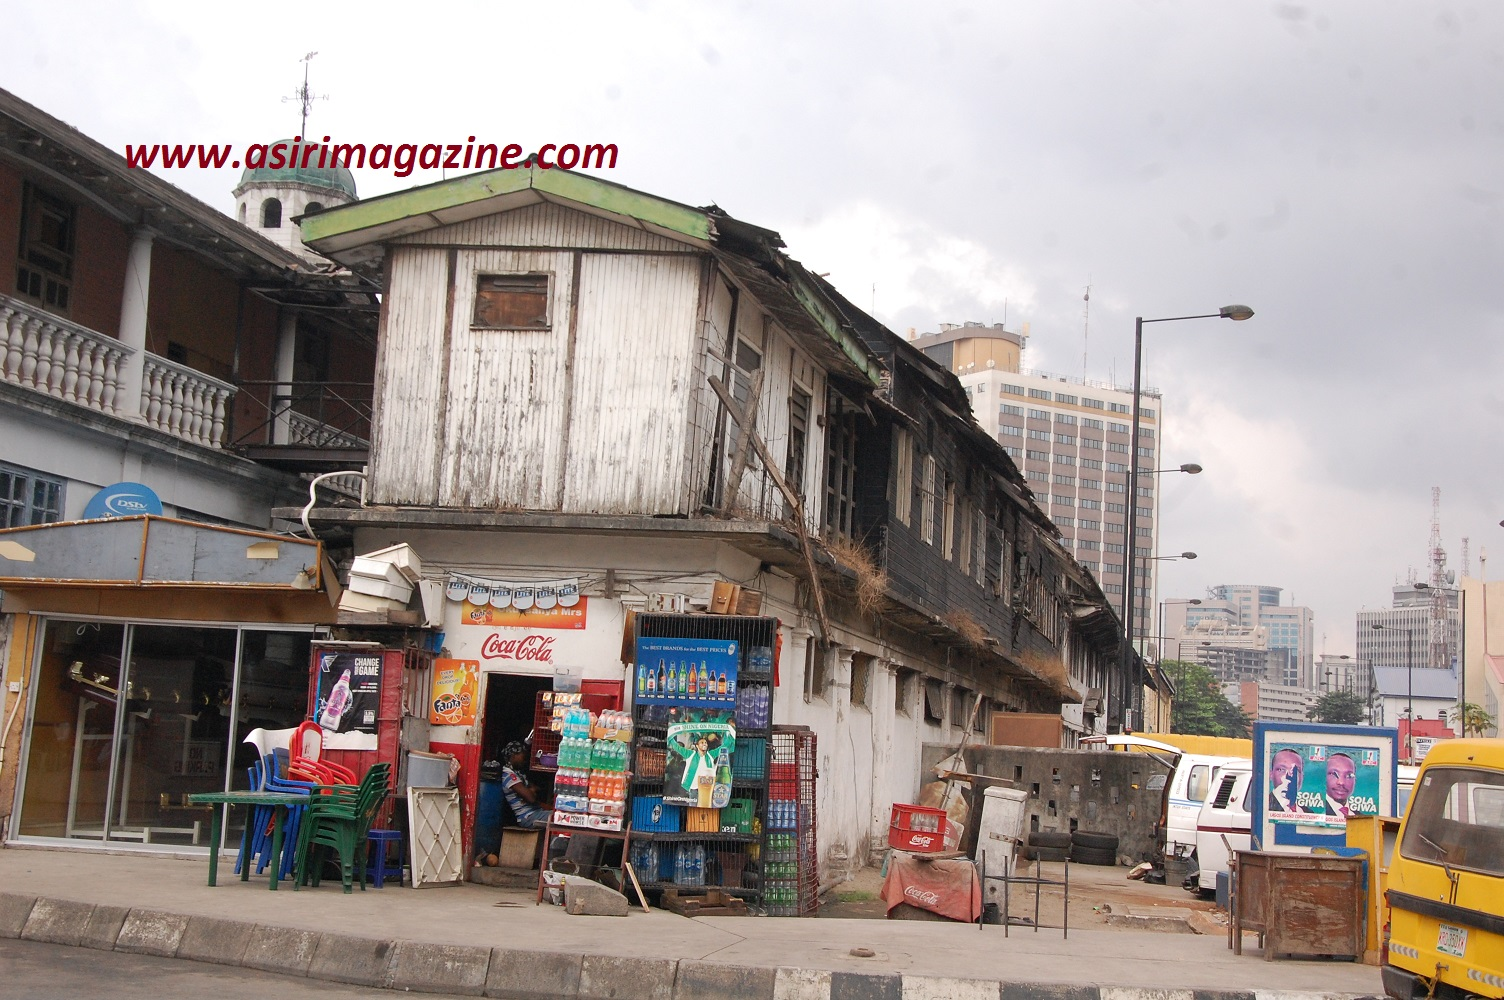 Side view of the former National Archives on Broad street Lagos